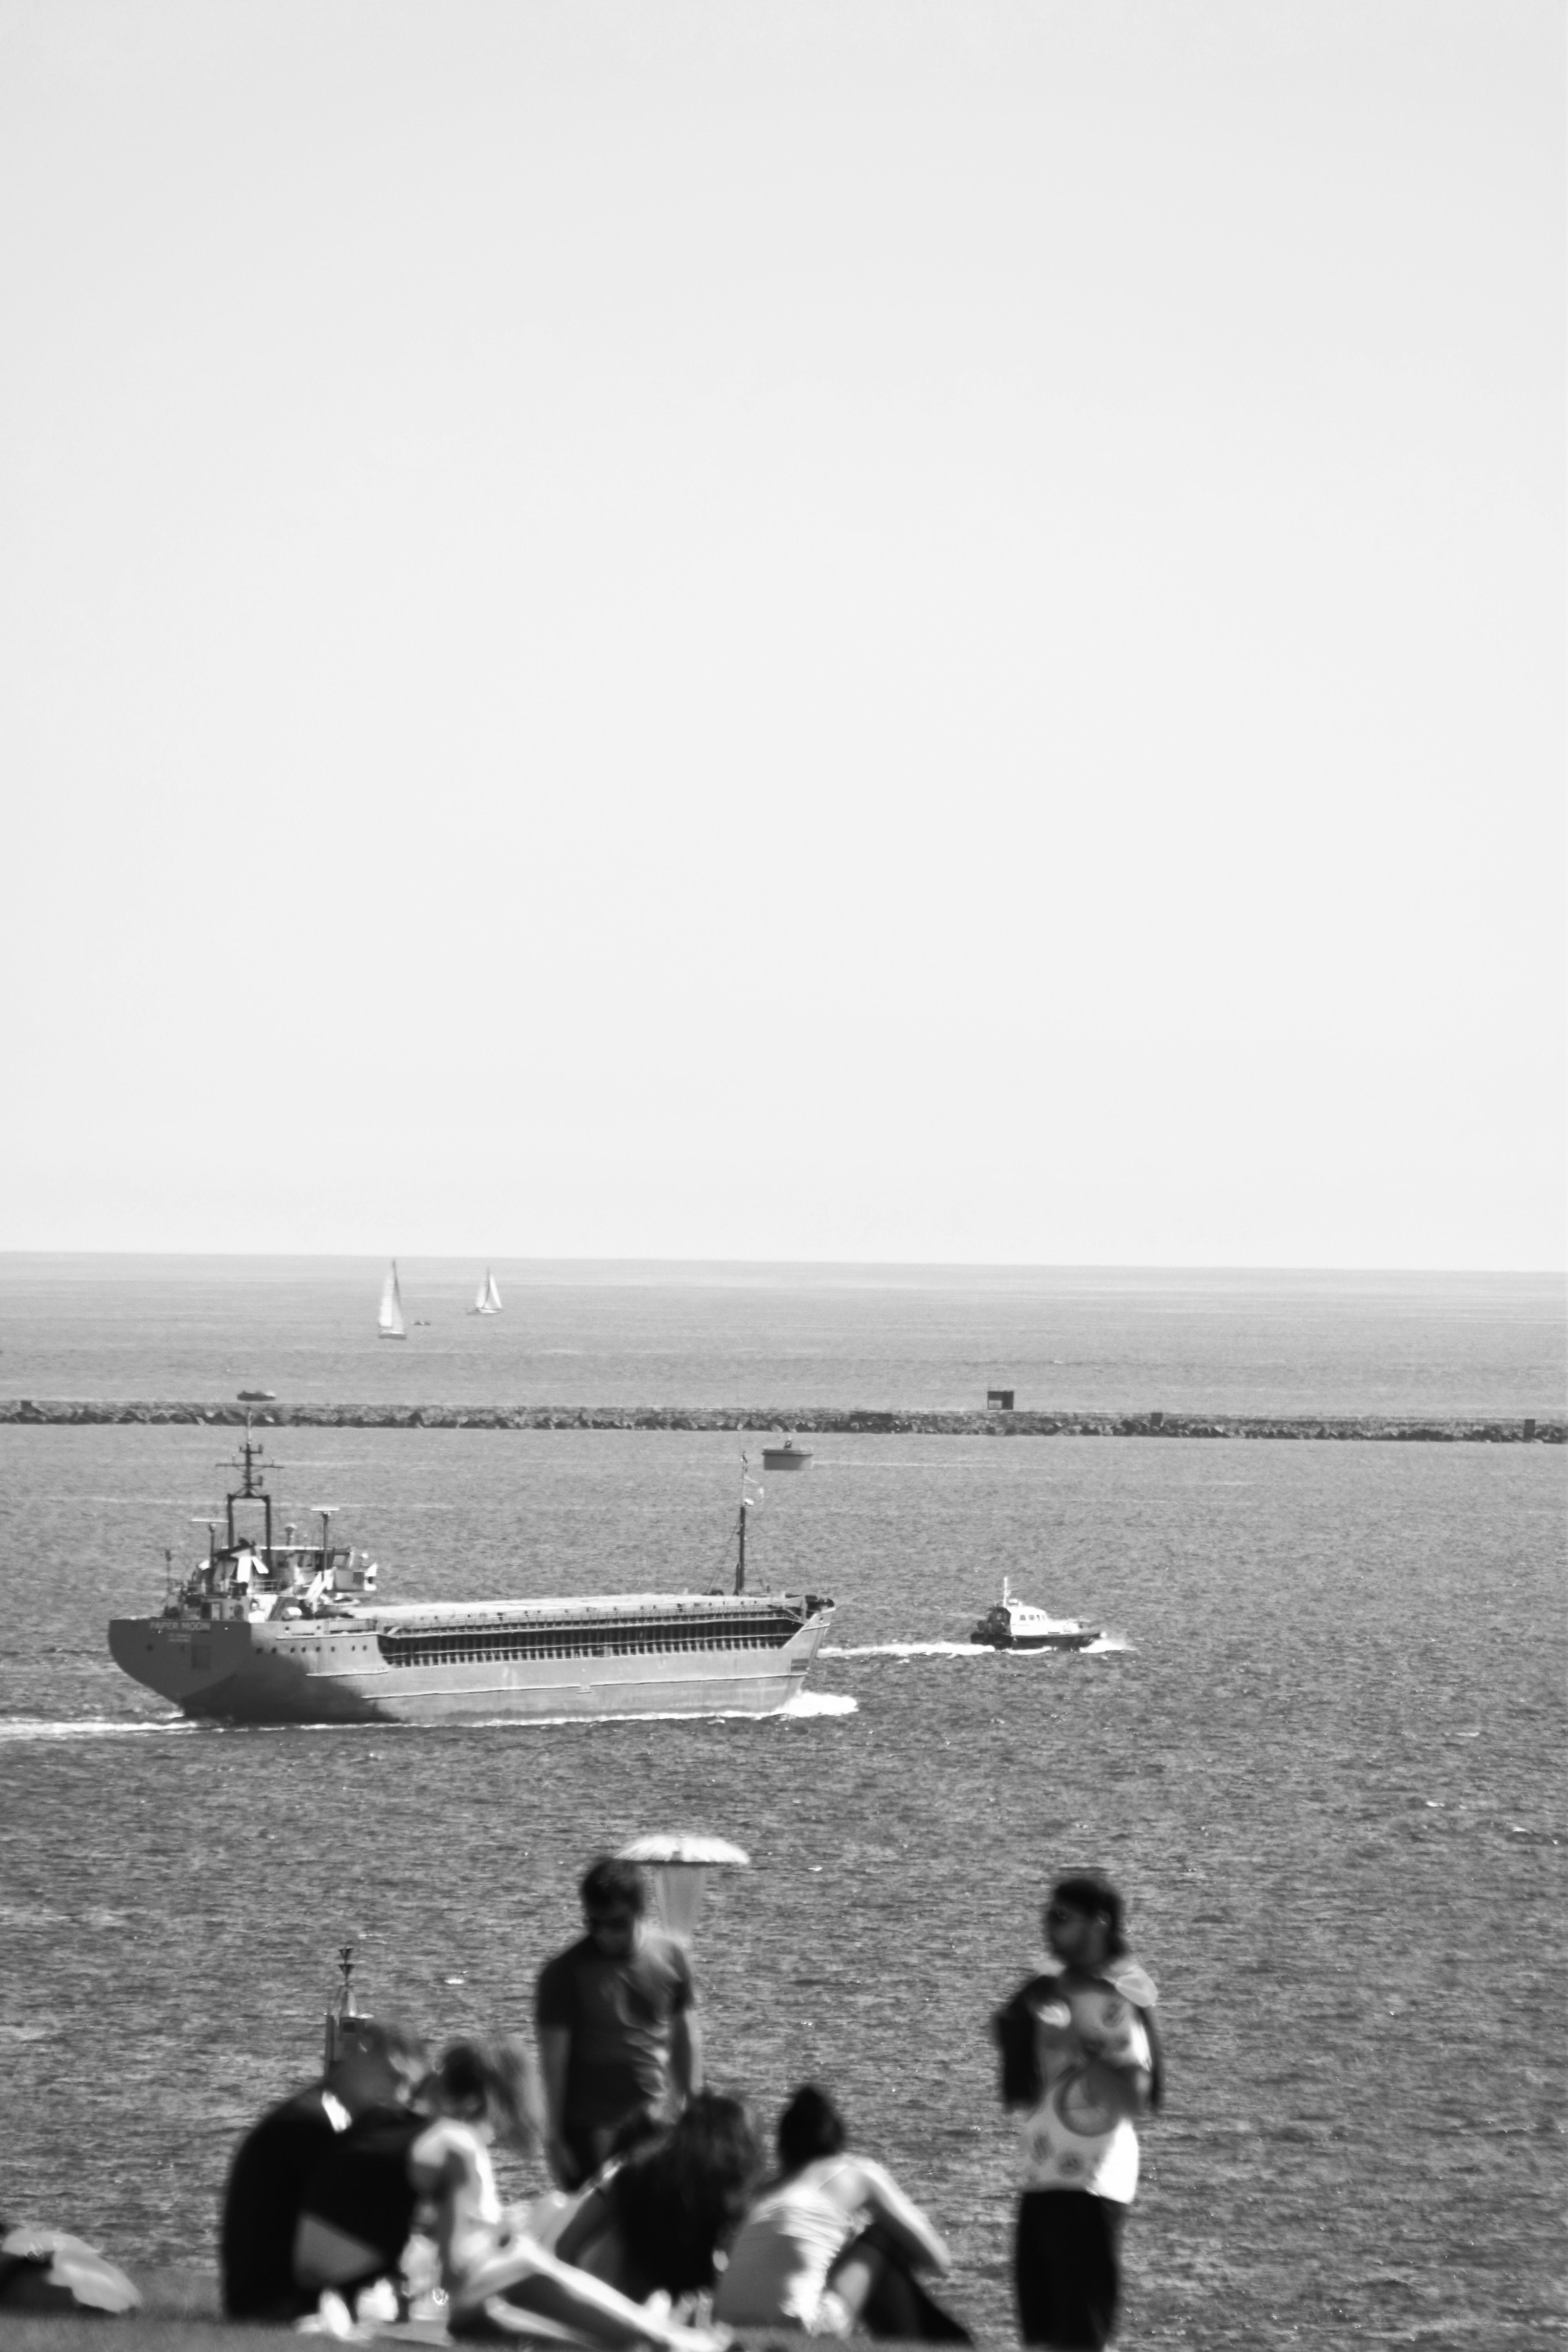 Free stock photo of bbq, cargo ship, sailing boat, waterfront